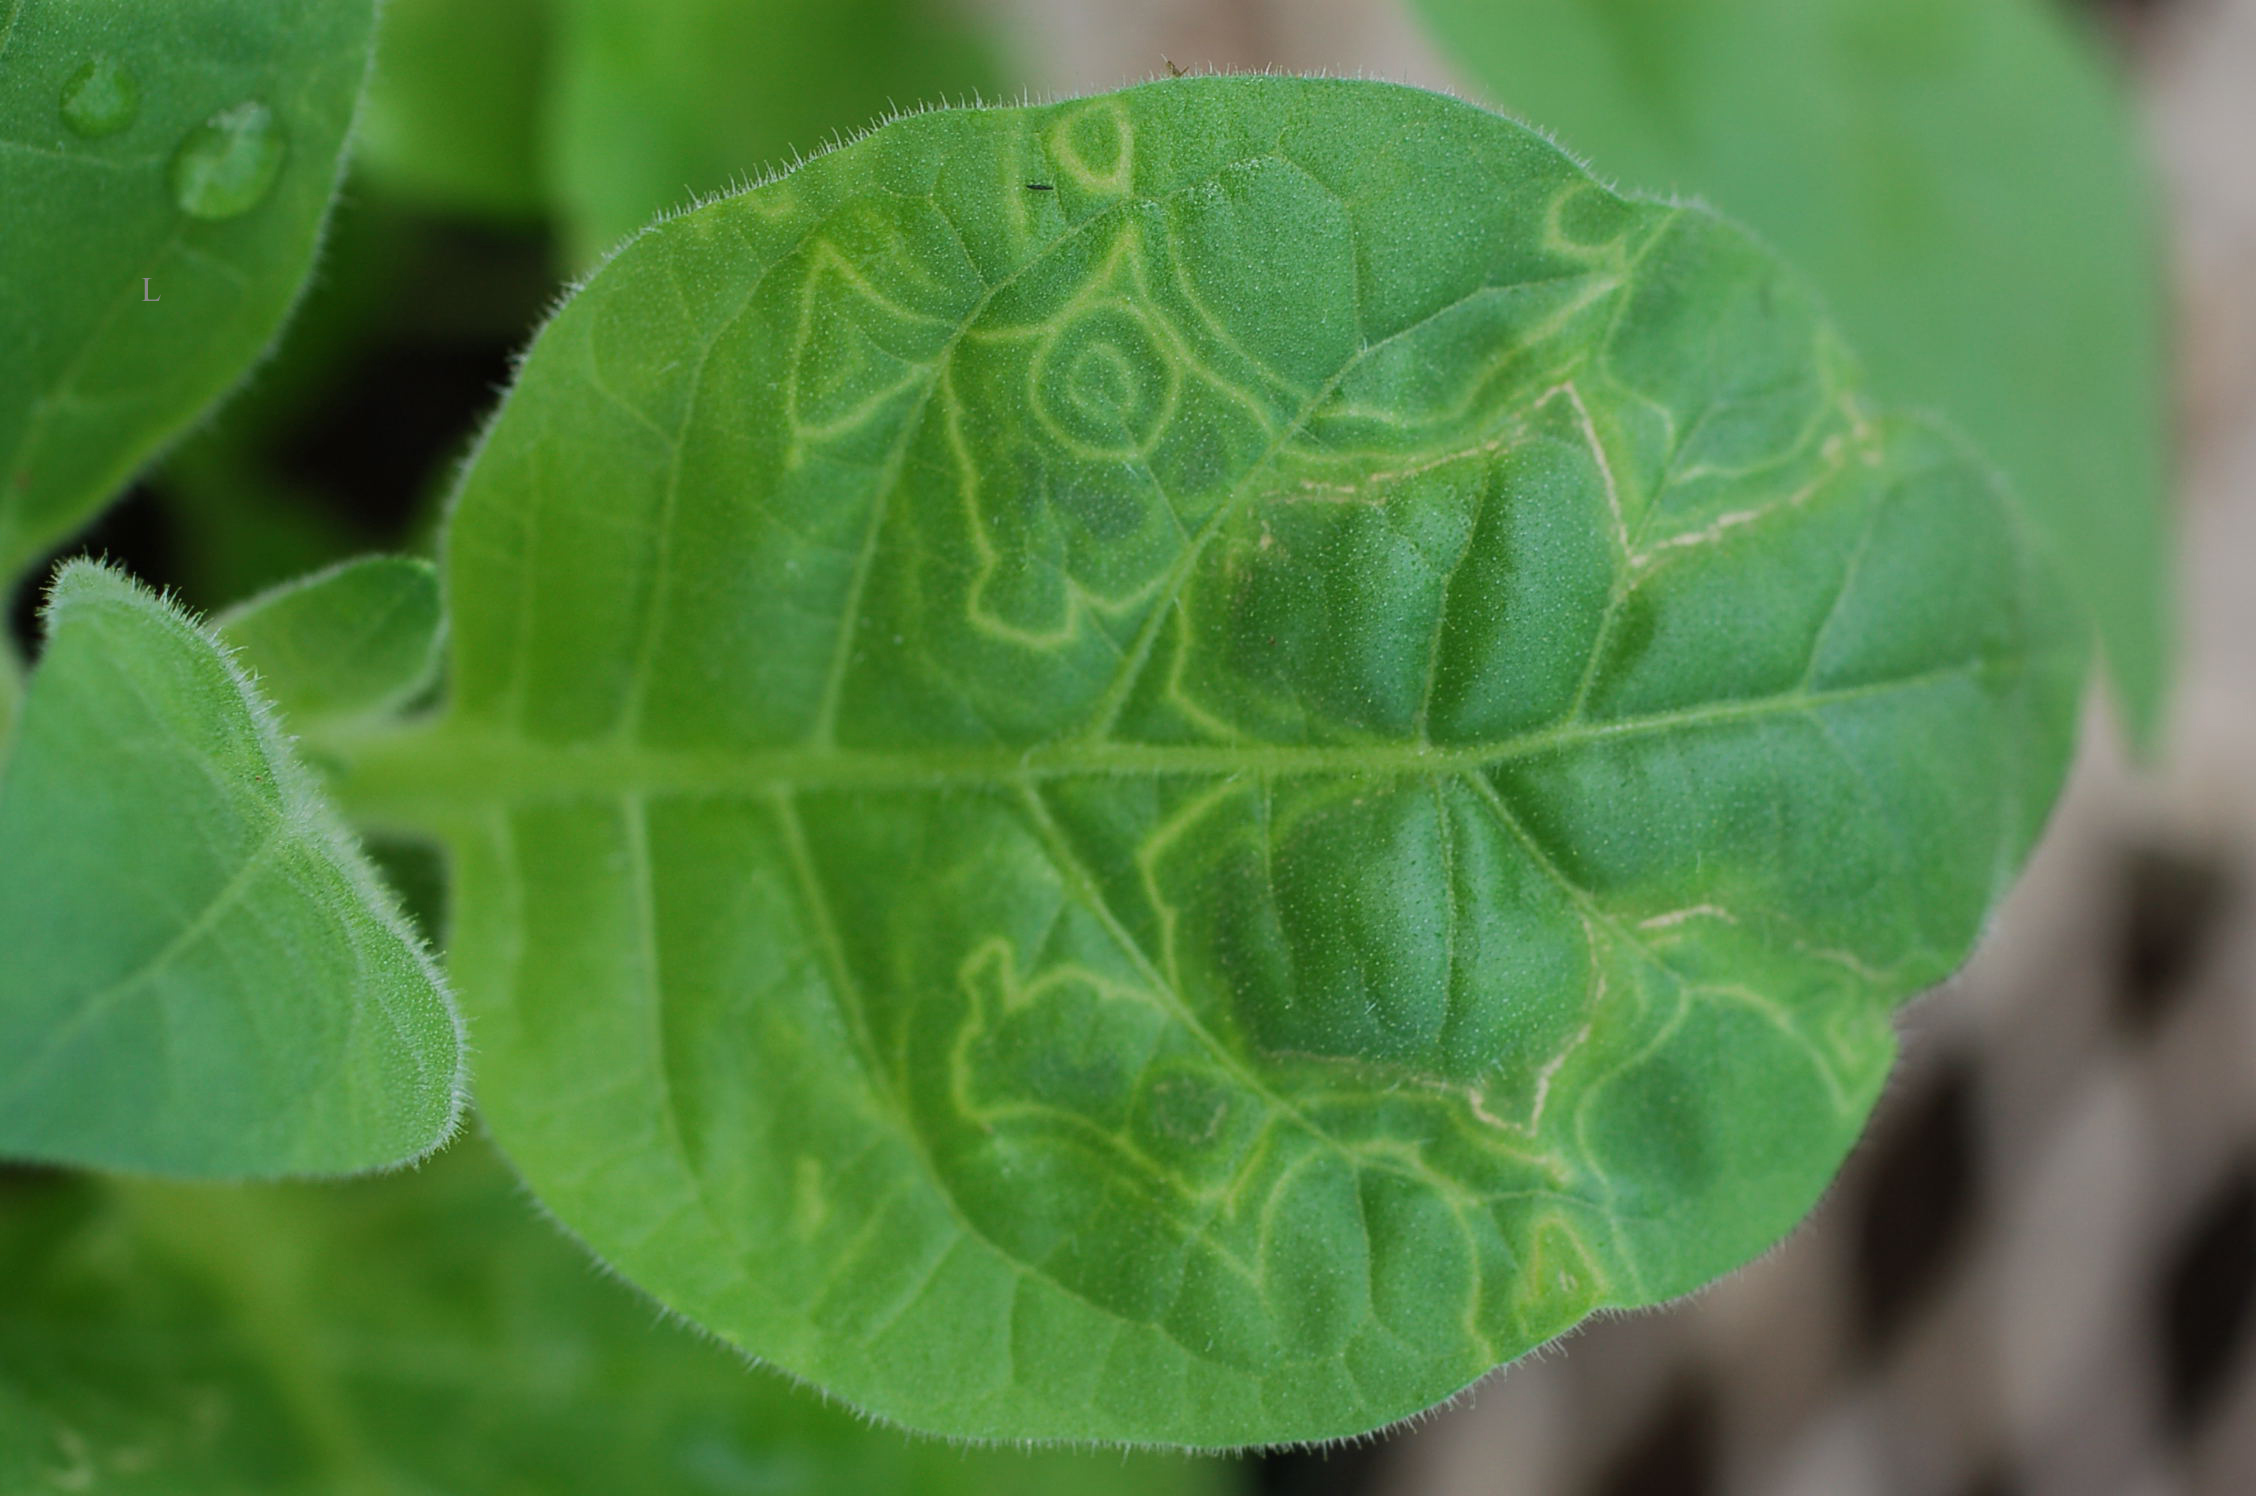 leaf showing virus infection symptoms